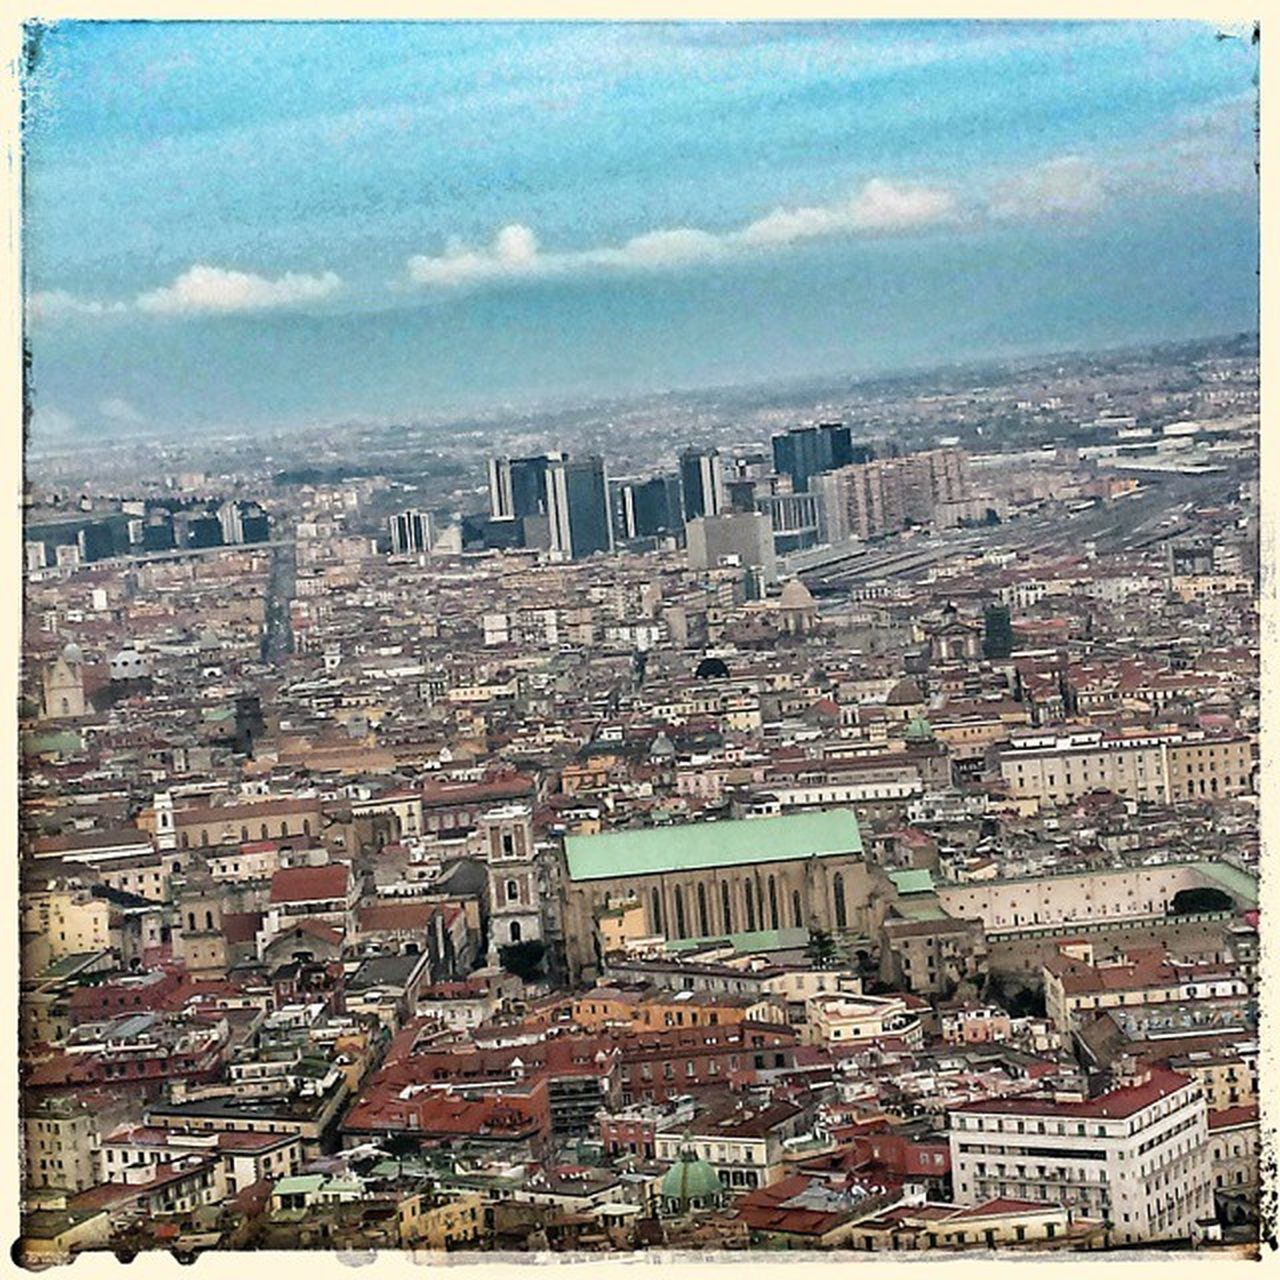 Napoli Naples Neapel なポリ イタリア 愛 buildings skyscrapers sky clouds Italy panorama church old new welcome